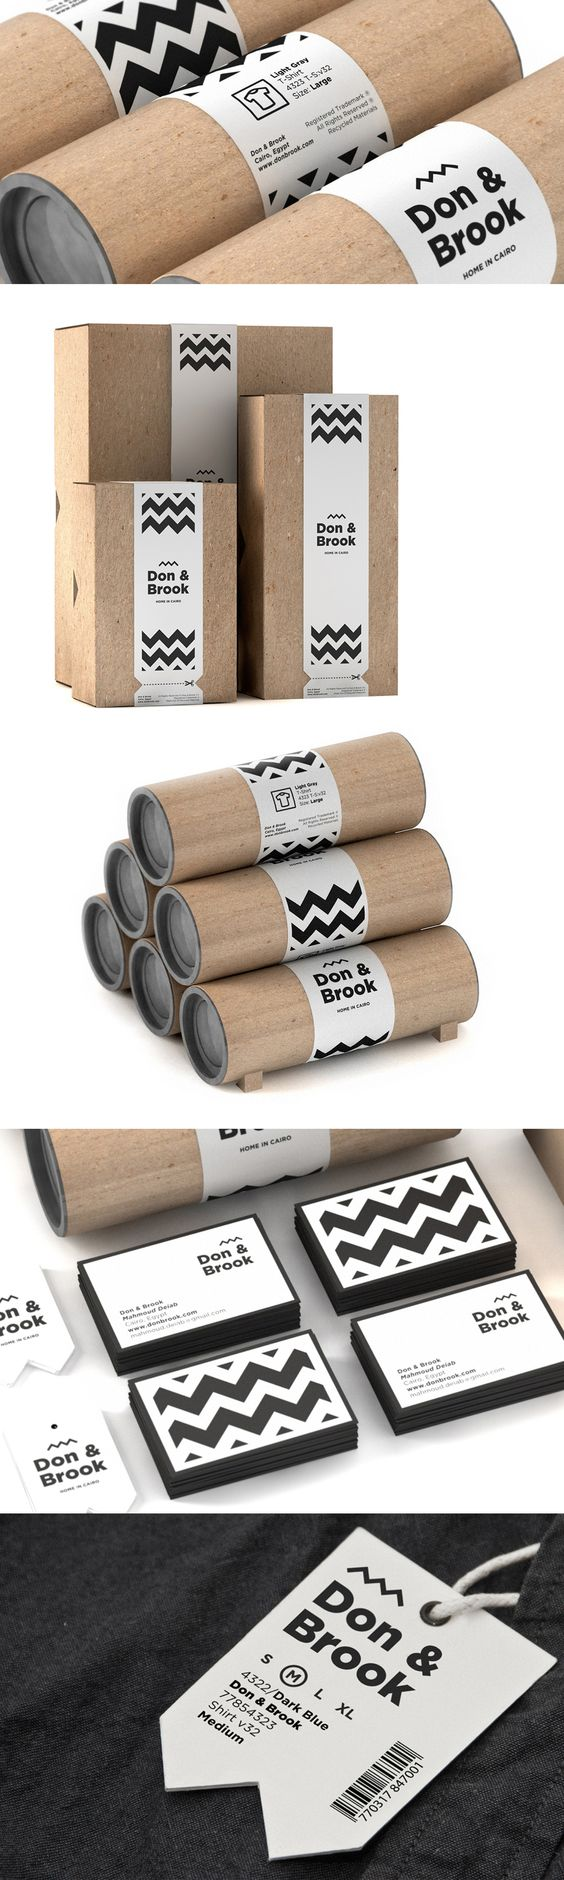 don brook packaging uses a corrugated plain box and branded sleeve